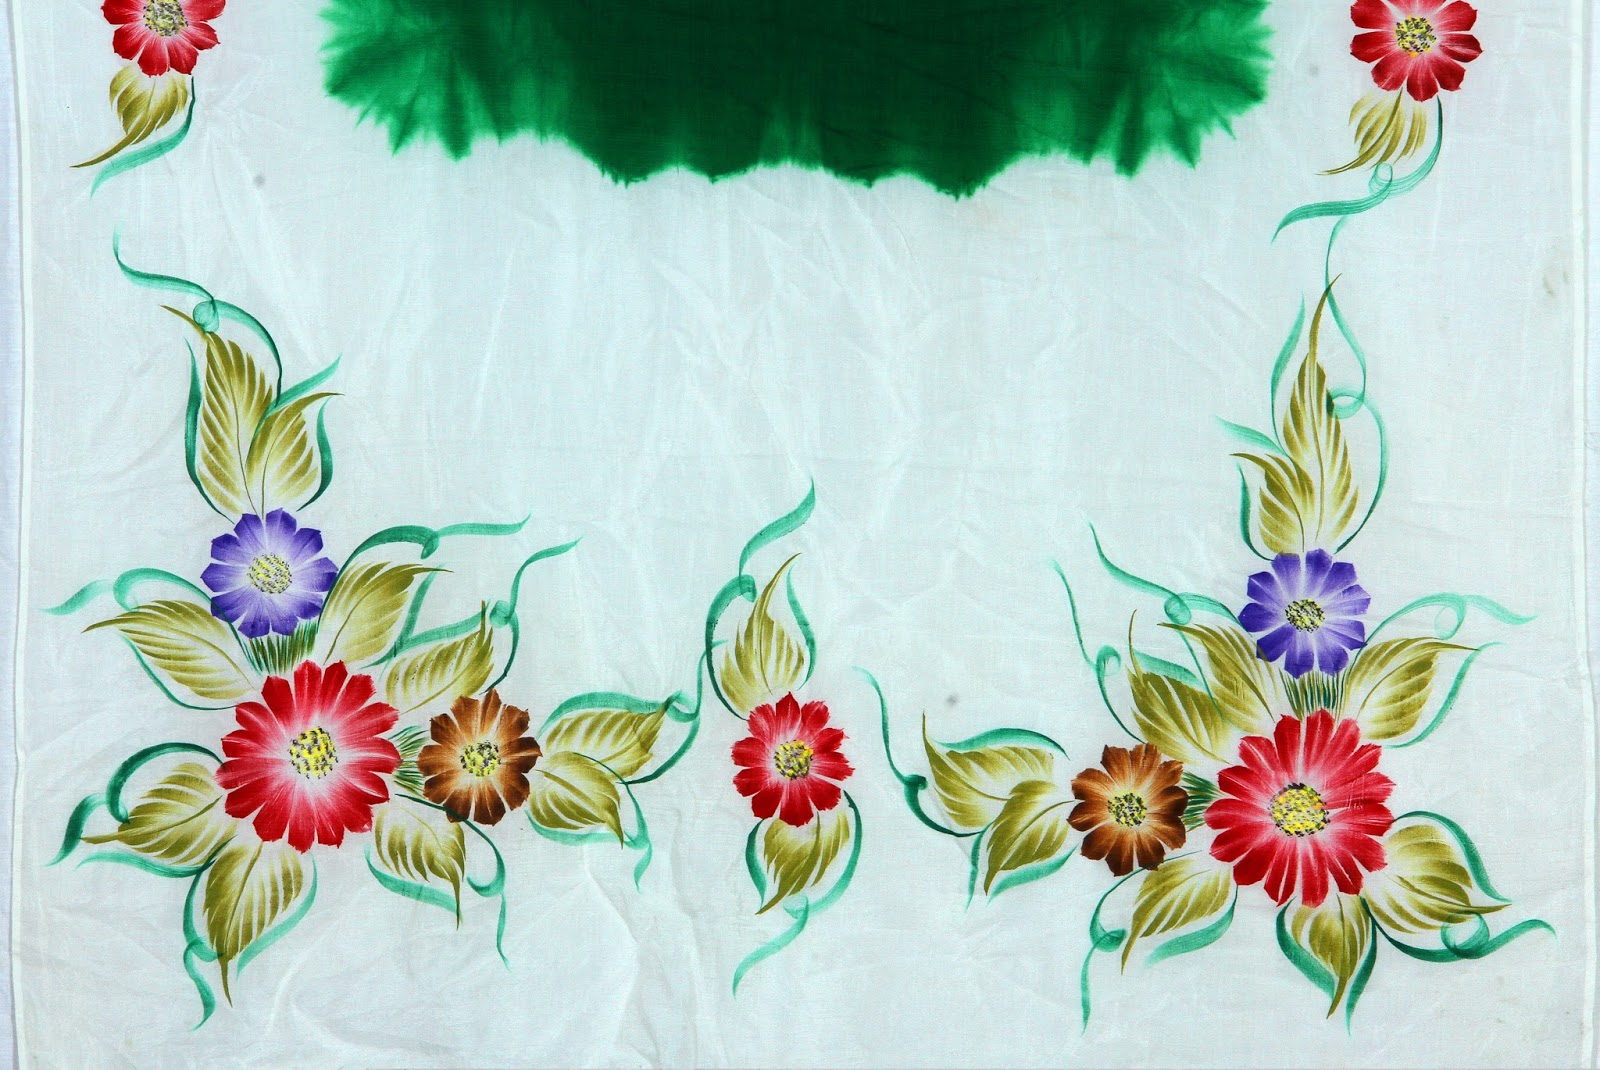 Freehand Fabric Painting Tye And Dye White Green Mixed Shade Saree Flowers Design